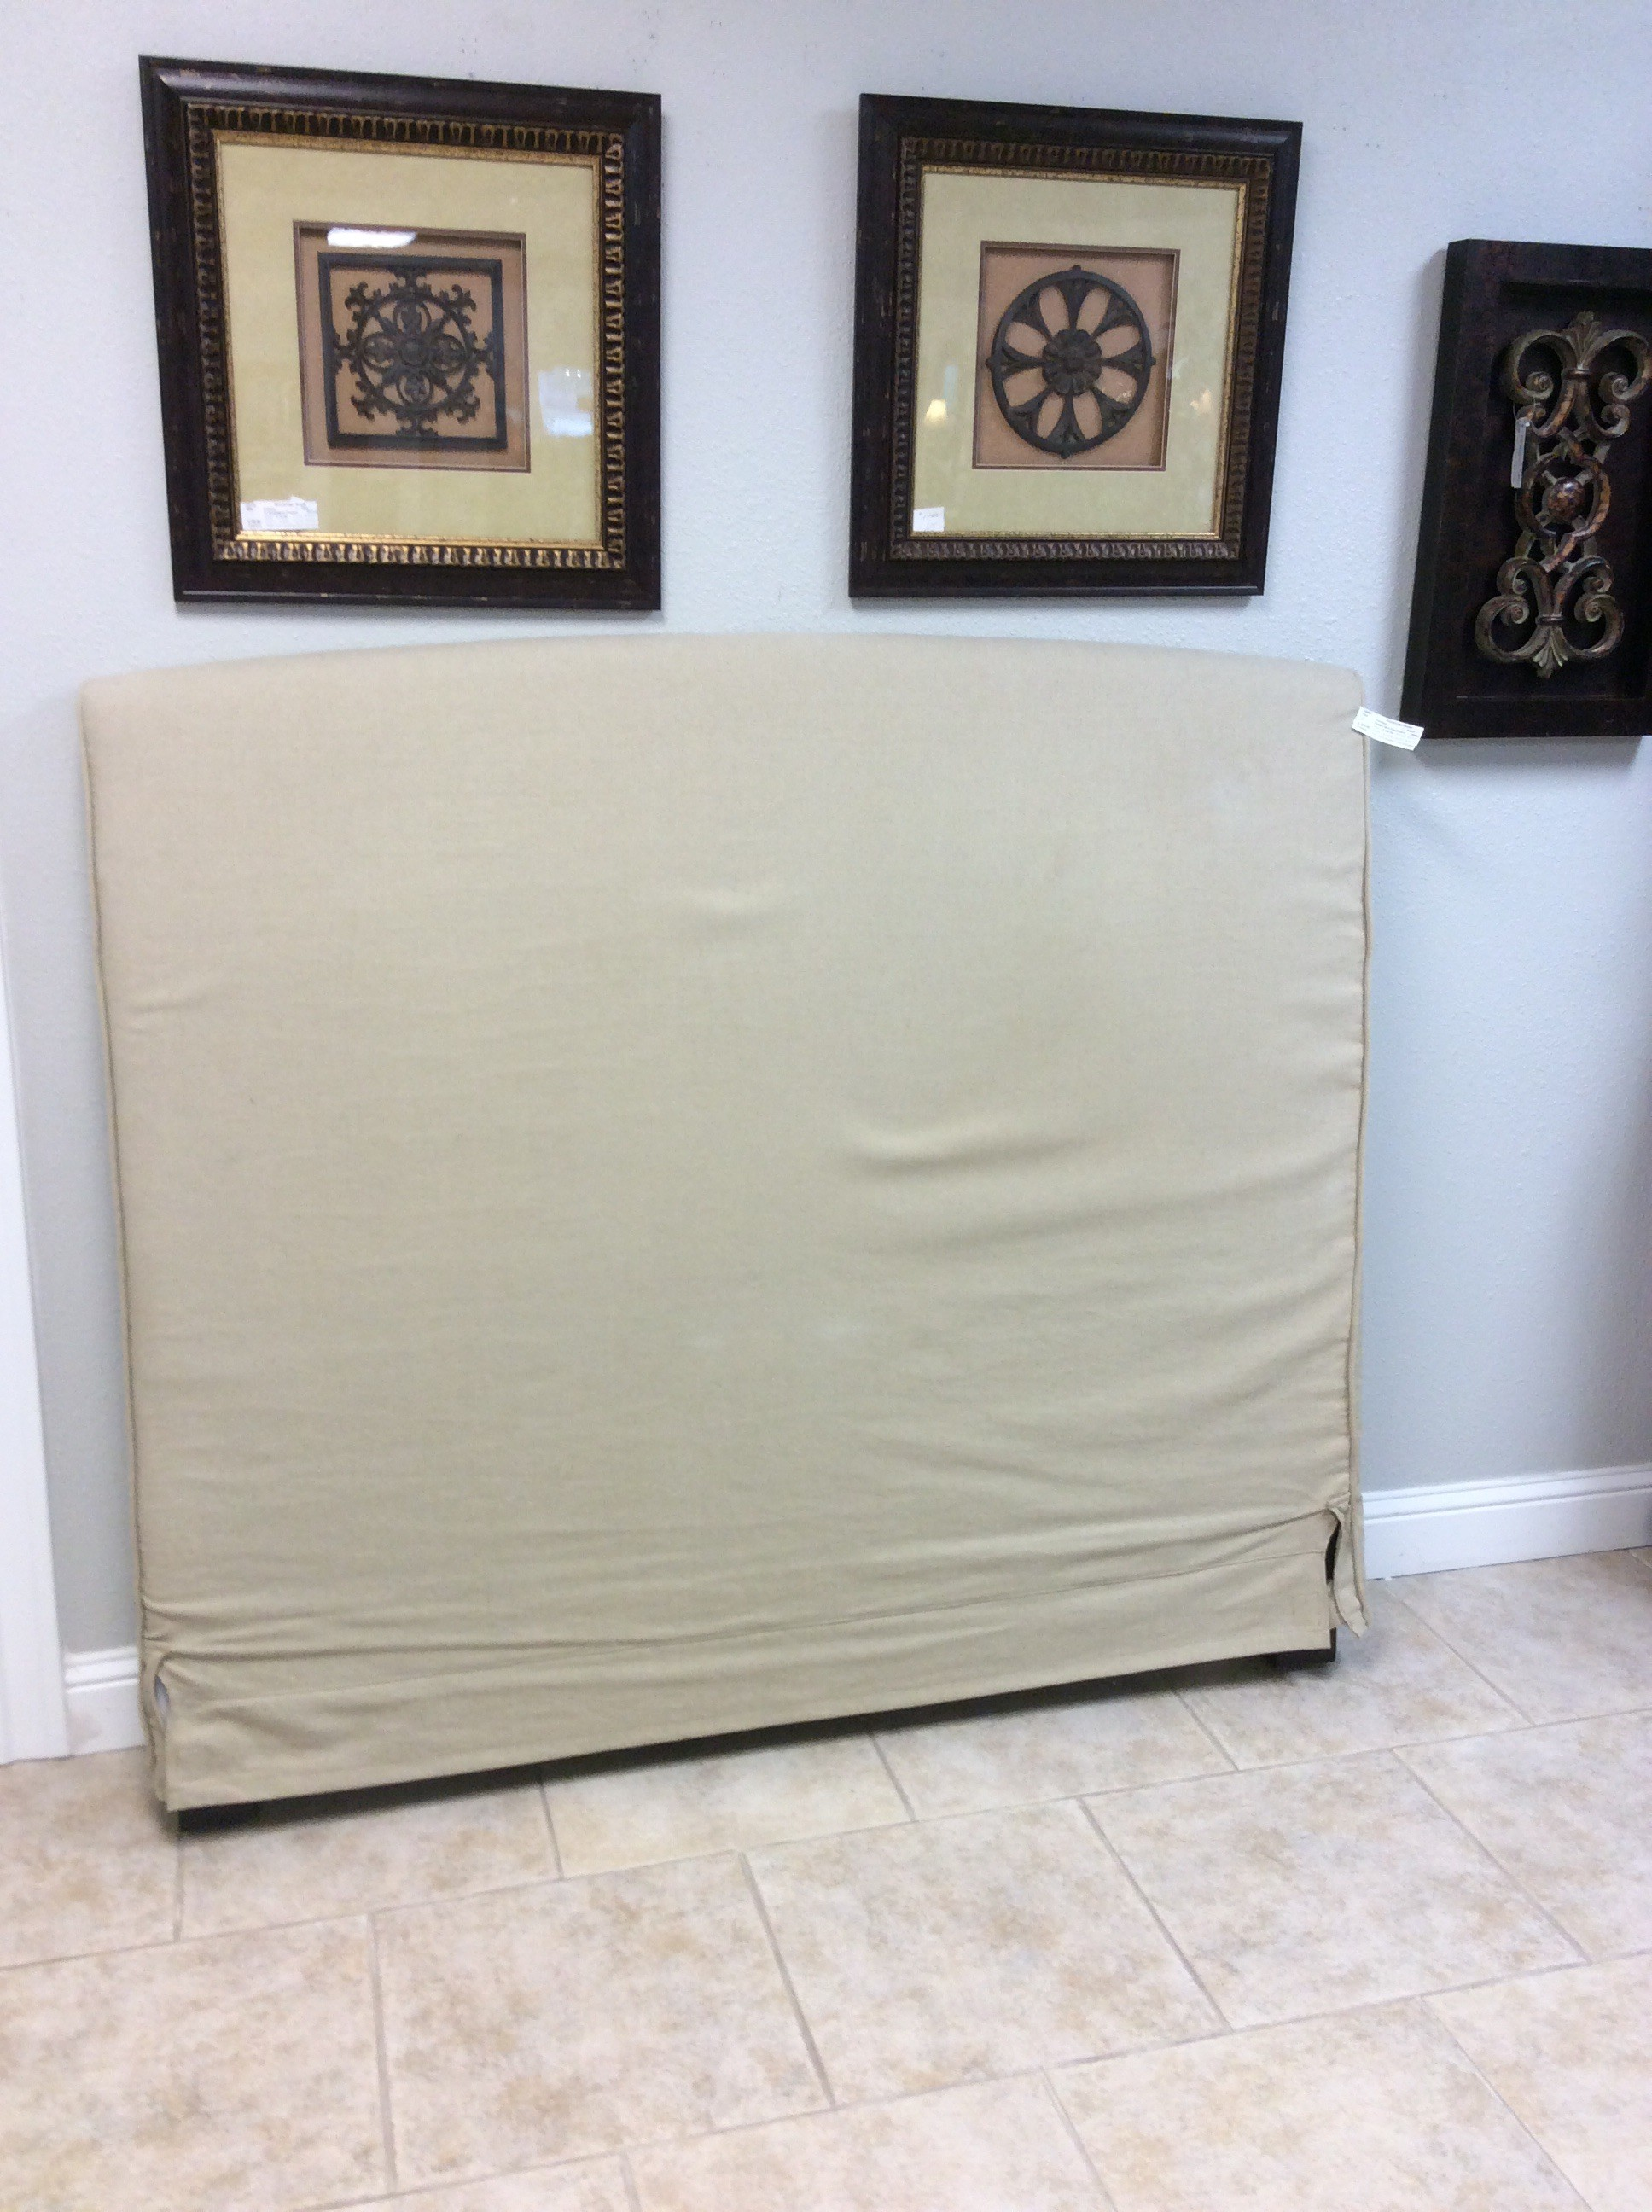 This headboard only is from Pottery Barn. Queen-size, it features a soft tan/khaki slipcover. Contemporary but neutral enough to fit well into many decorative styles.